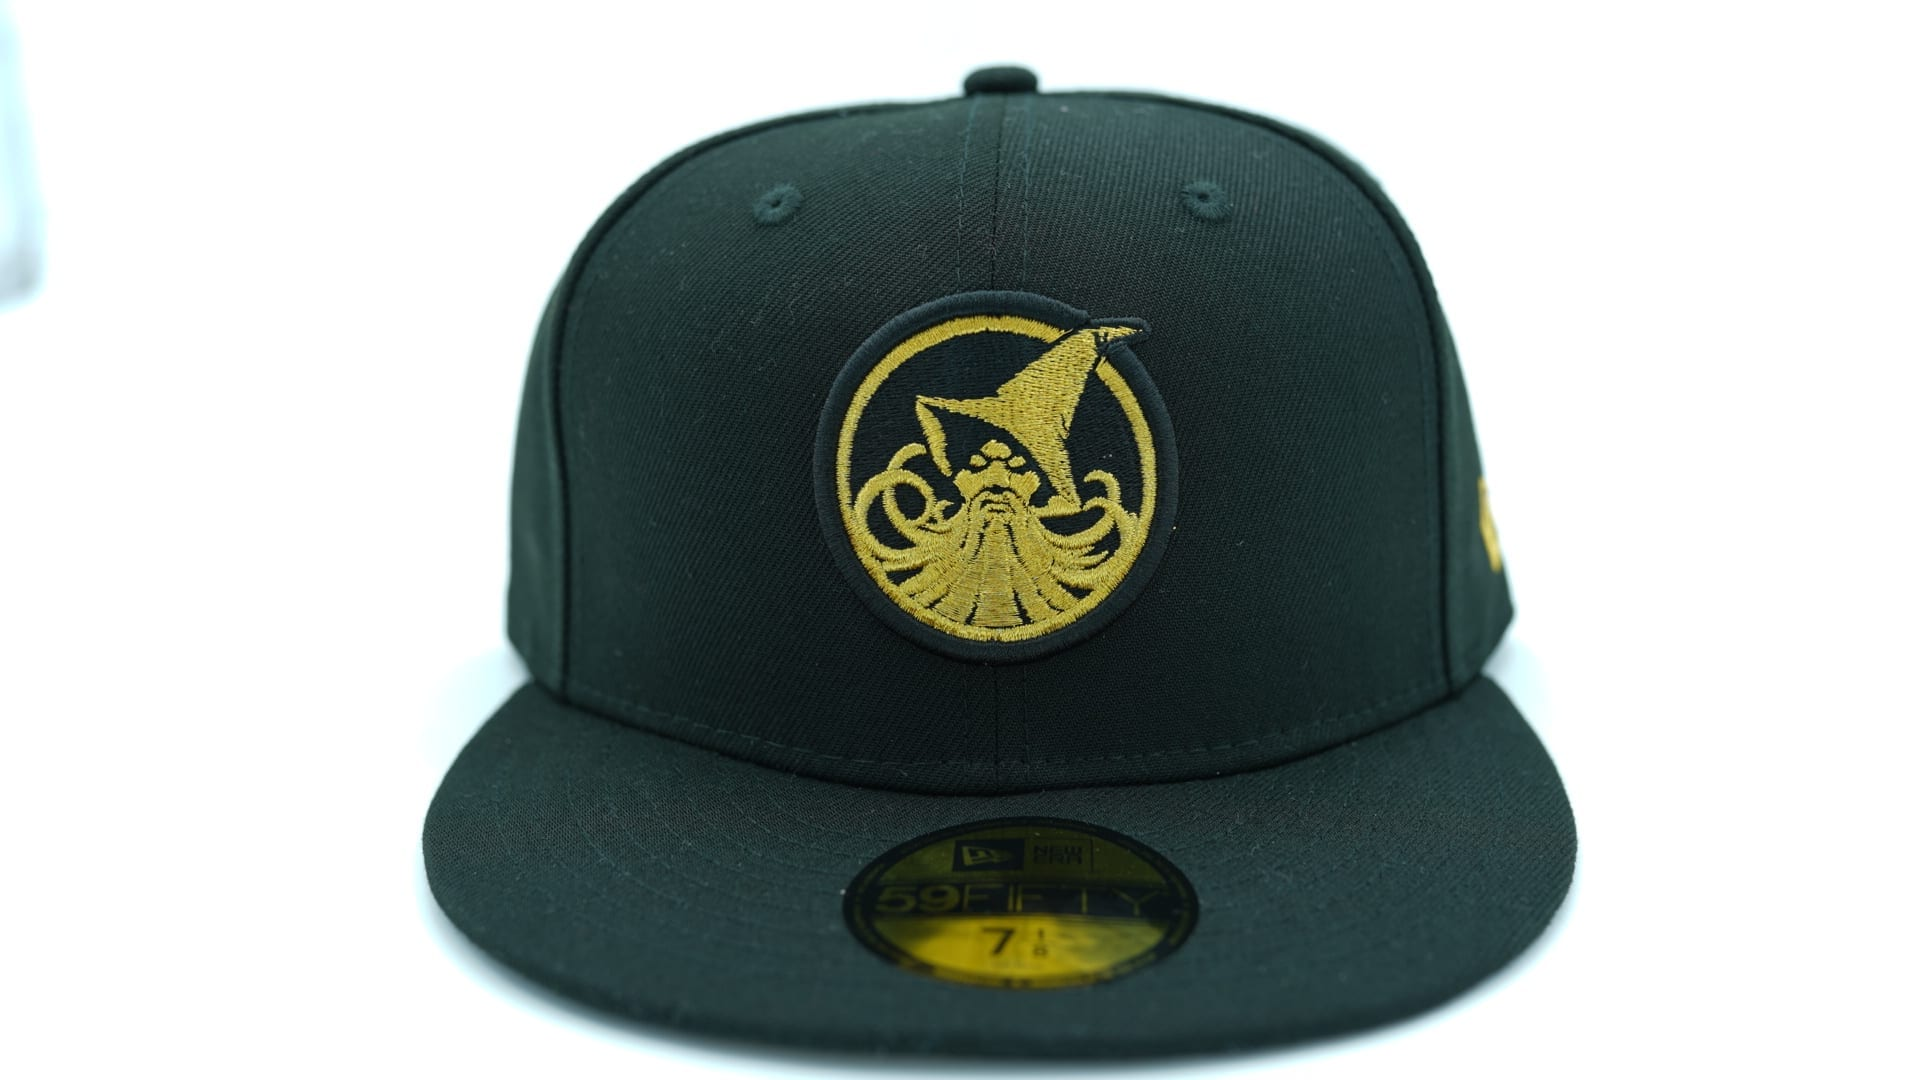 new product e5c74 49457 los angeles clippers basic 59fifty fitted baseball cap new era nba 1